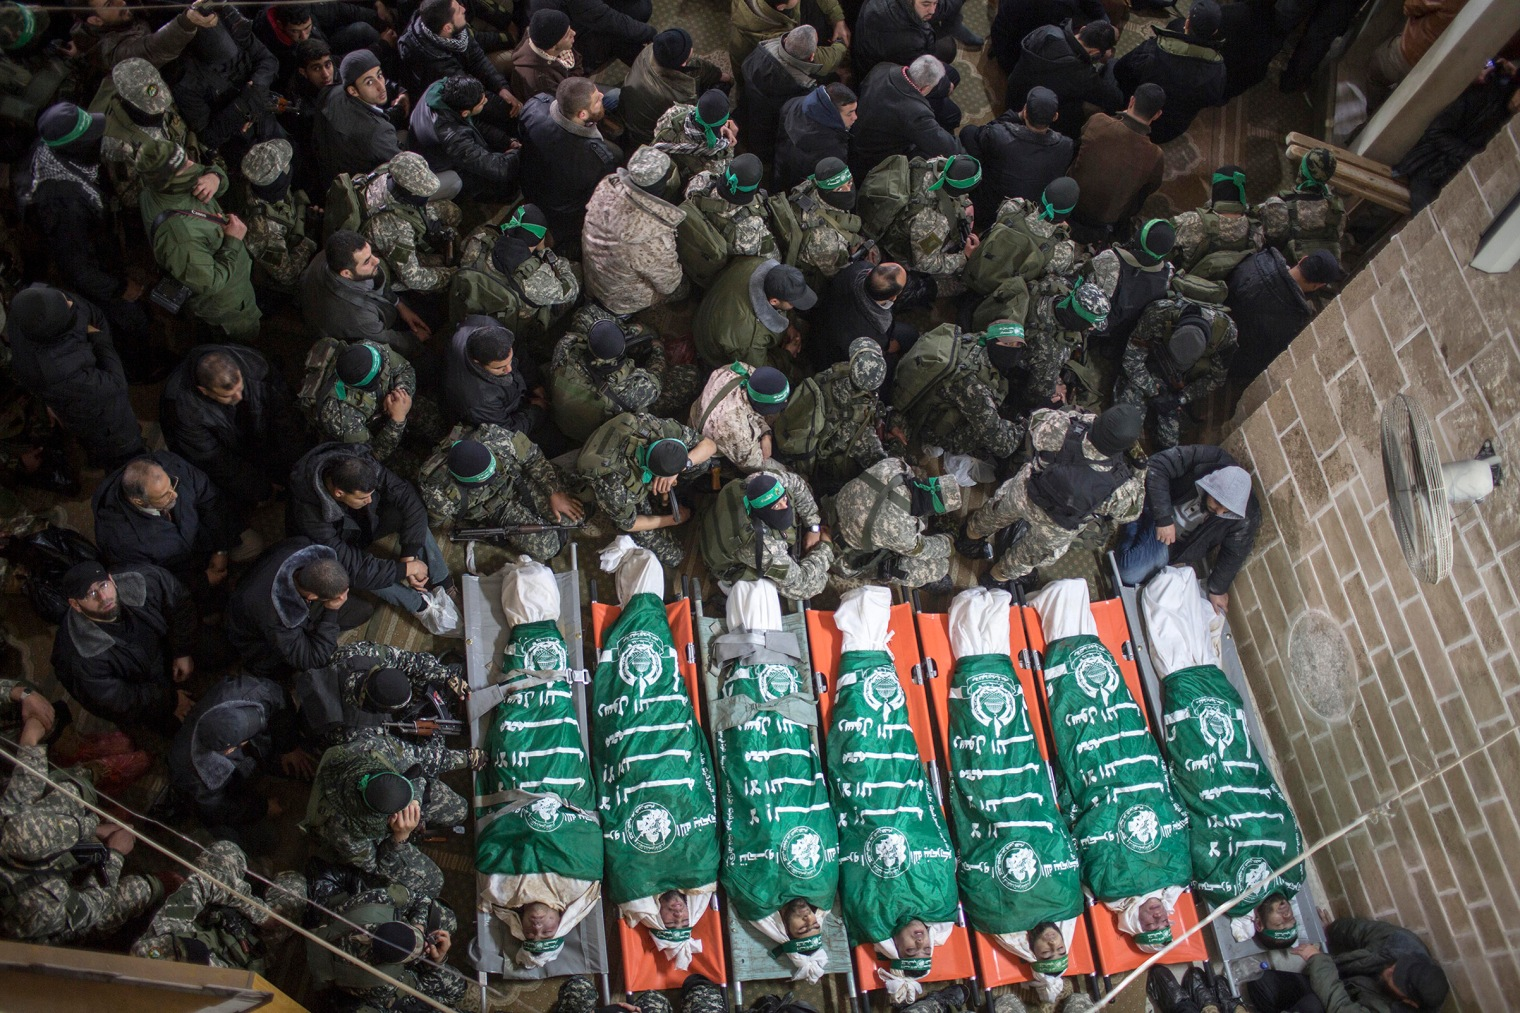 Palestinian fighters of the Izz Al-Din al-Qassam brigades, the military wing of Palestinian Hamas organization, sit around the bodies of seven fighters in Al Omari mosque during their funeral in Gaza City on January 29, 2016. Seven fighters from were killed after a tunnel built in the conflict with Israel collapsed.